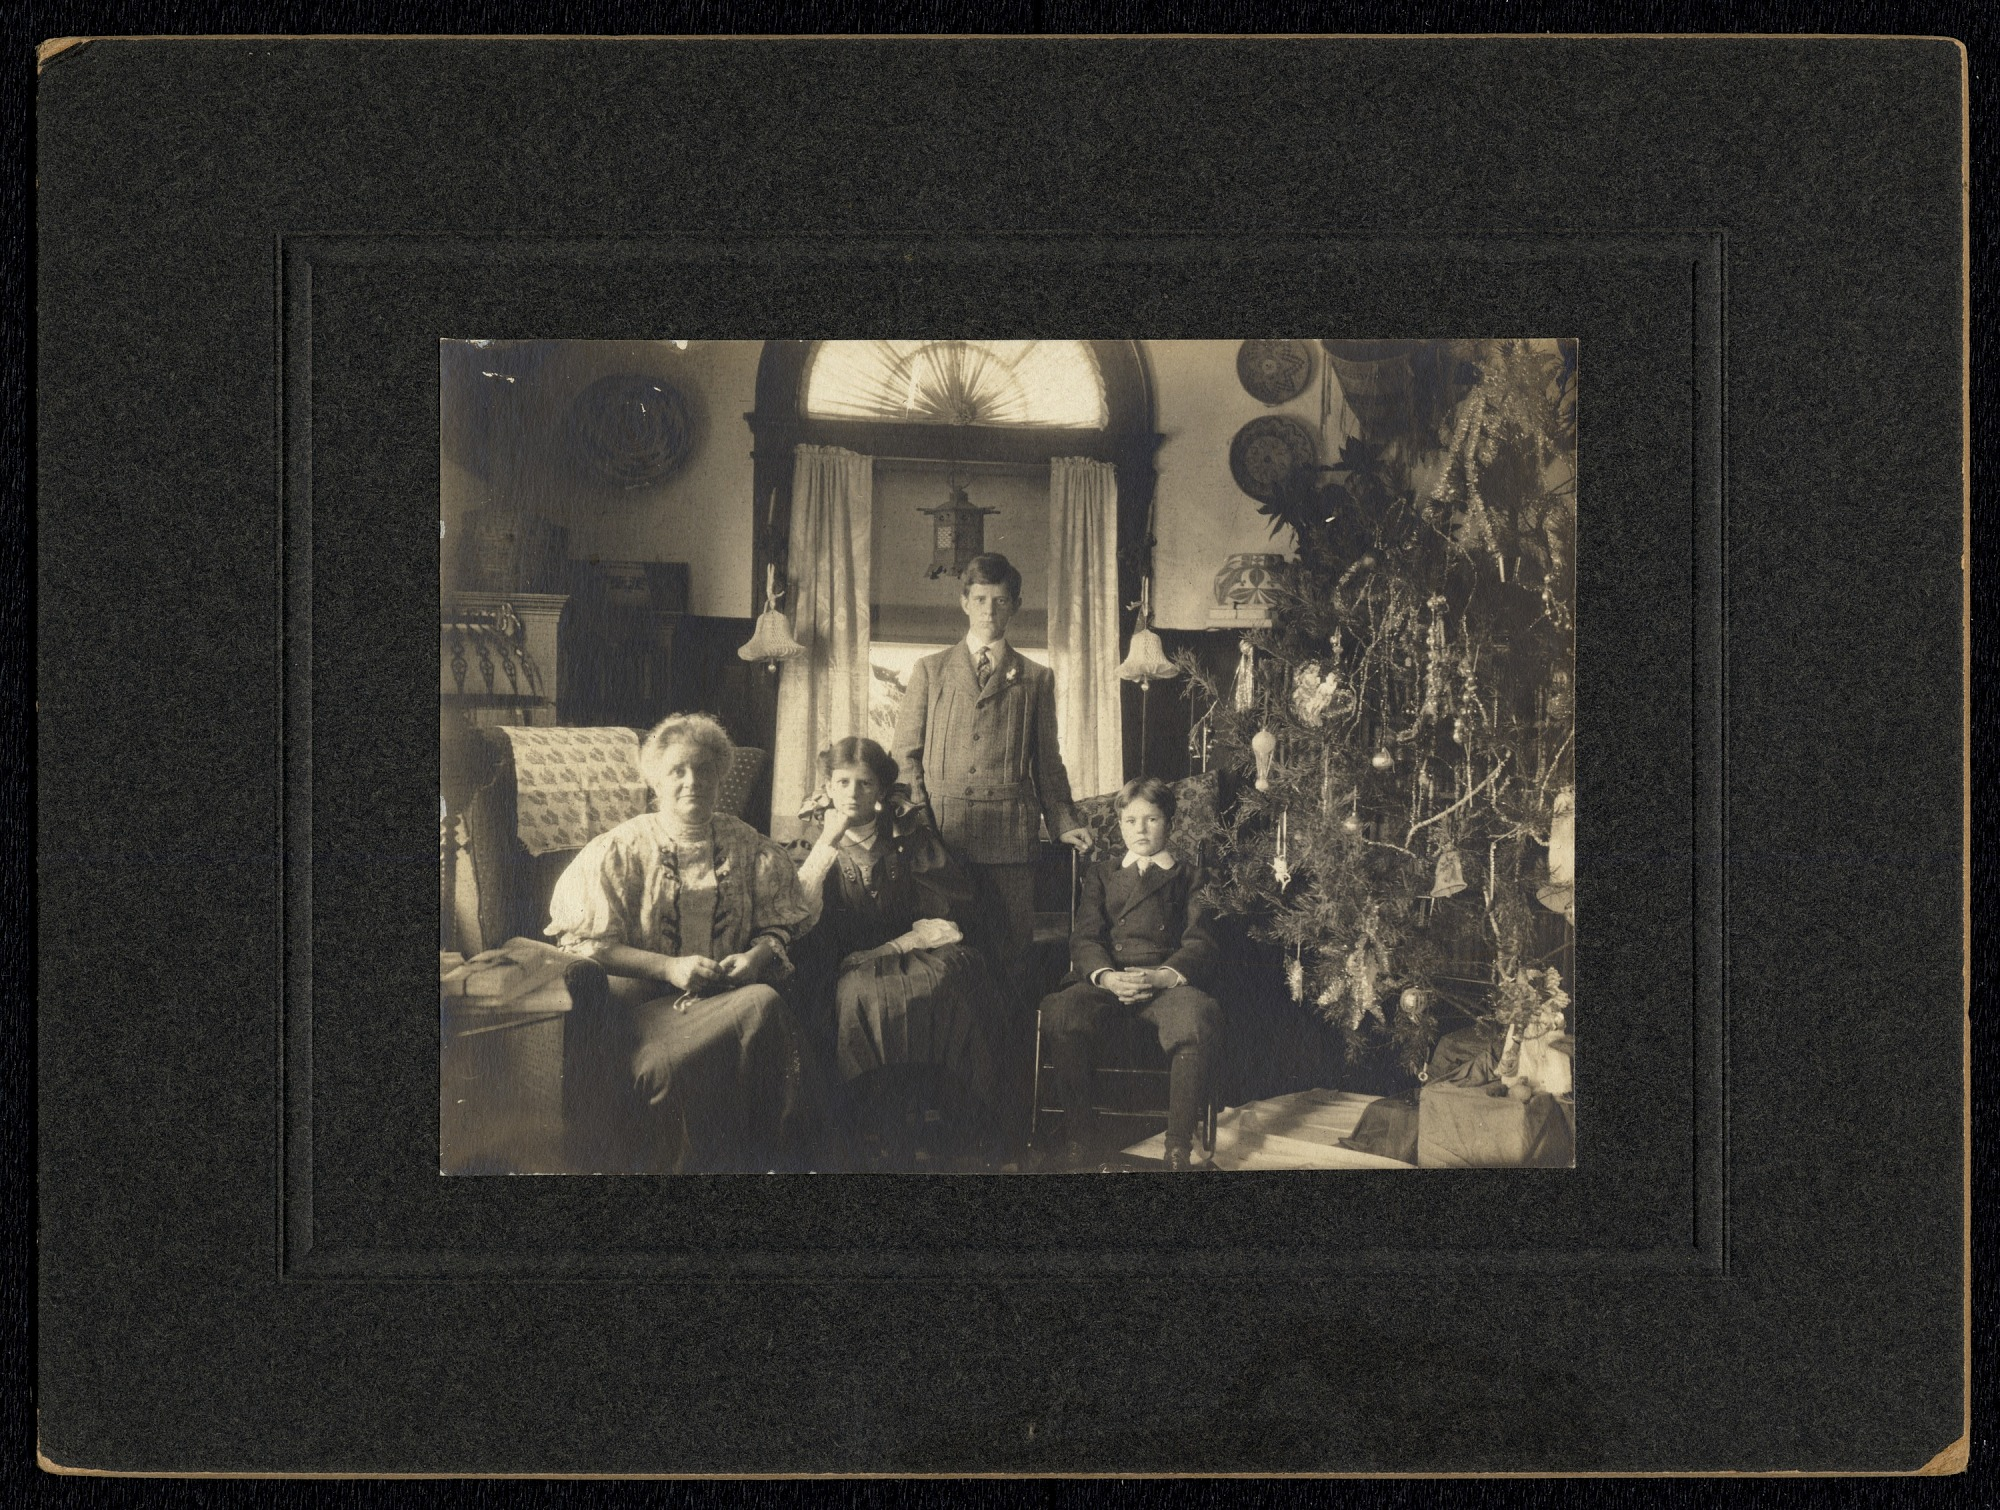 Walcott Family Christmas Morning, by Walcott, Charles D (Charles Doolittle) 1850-1927, December 25, 1907, Smithsonian Archives - History Div, SIA2011-0017.